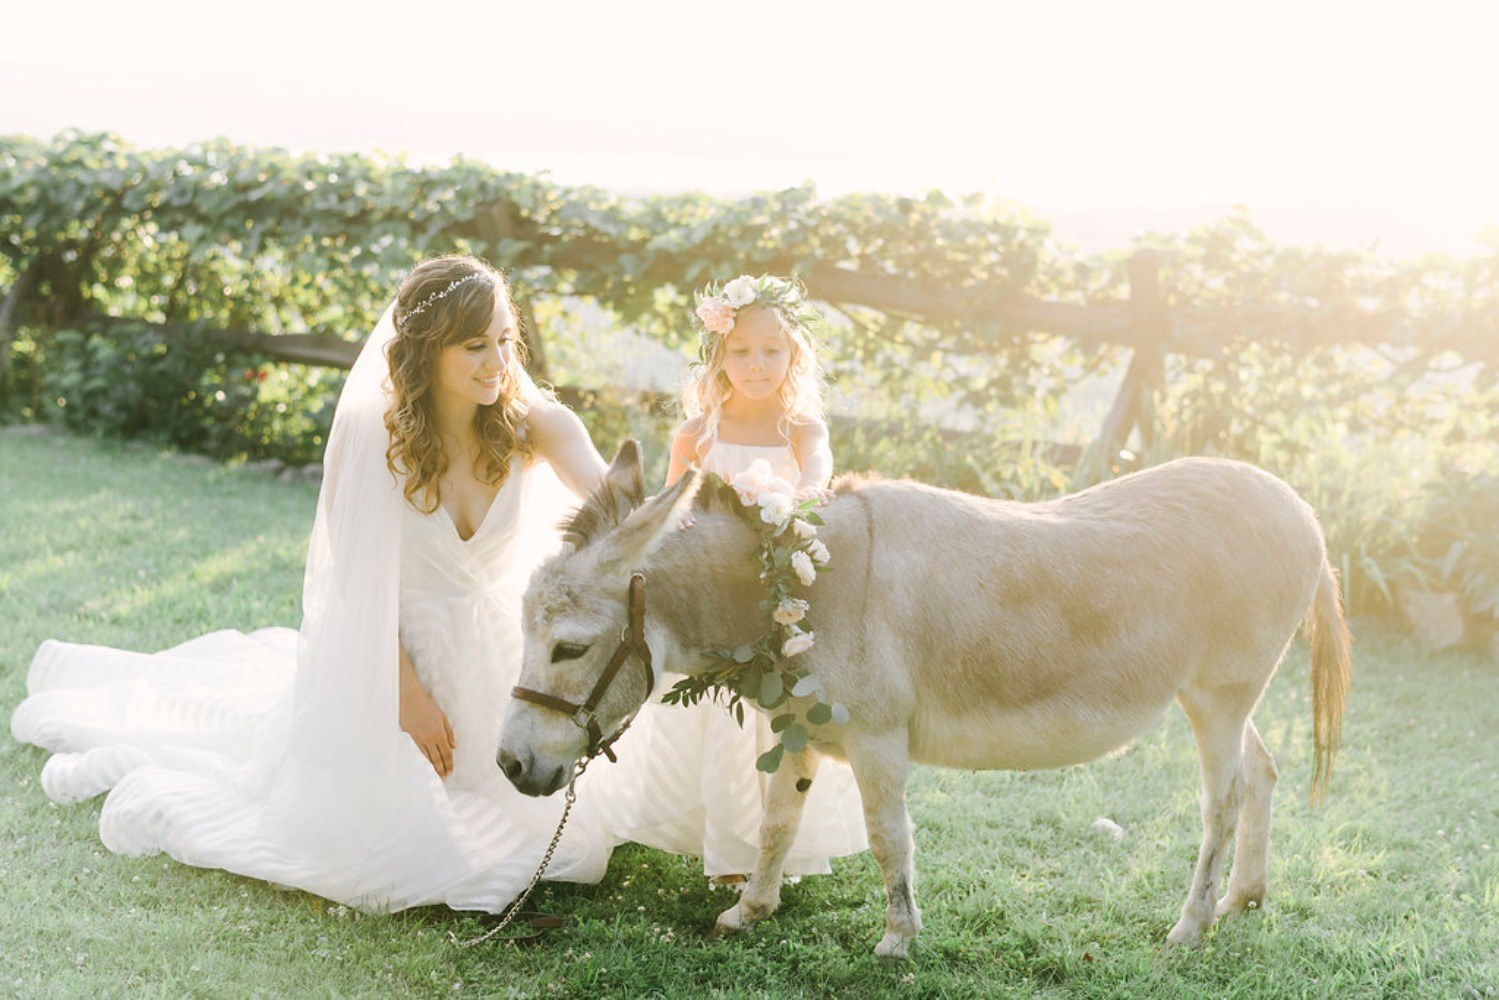 Cute wedding donkey